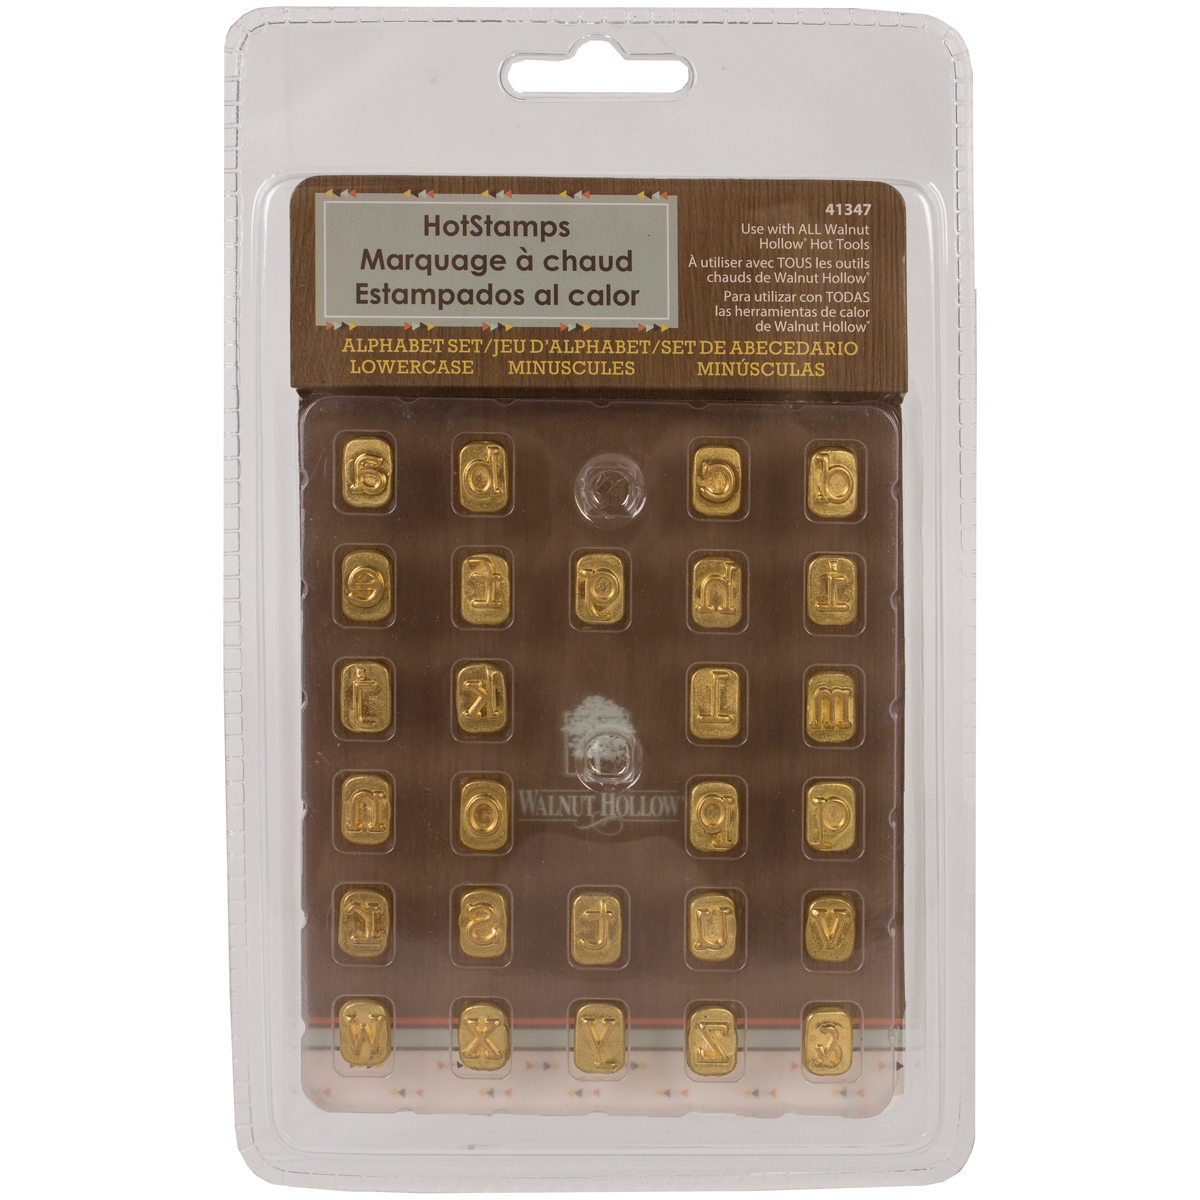 Walnut Hollow Mini Hot Stamps Alphabet Set, Lower Case